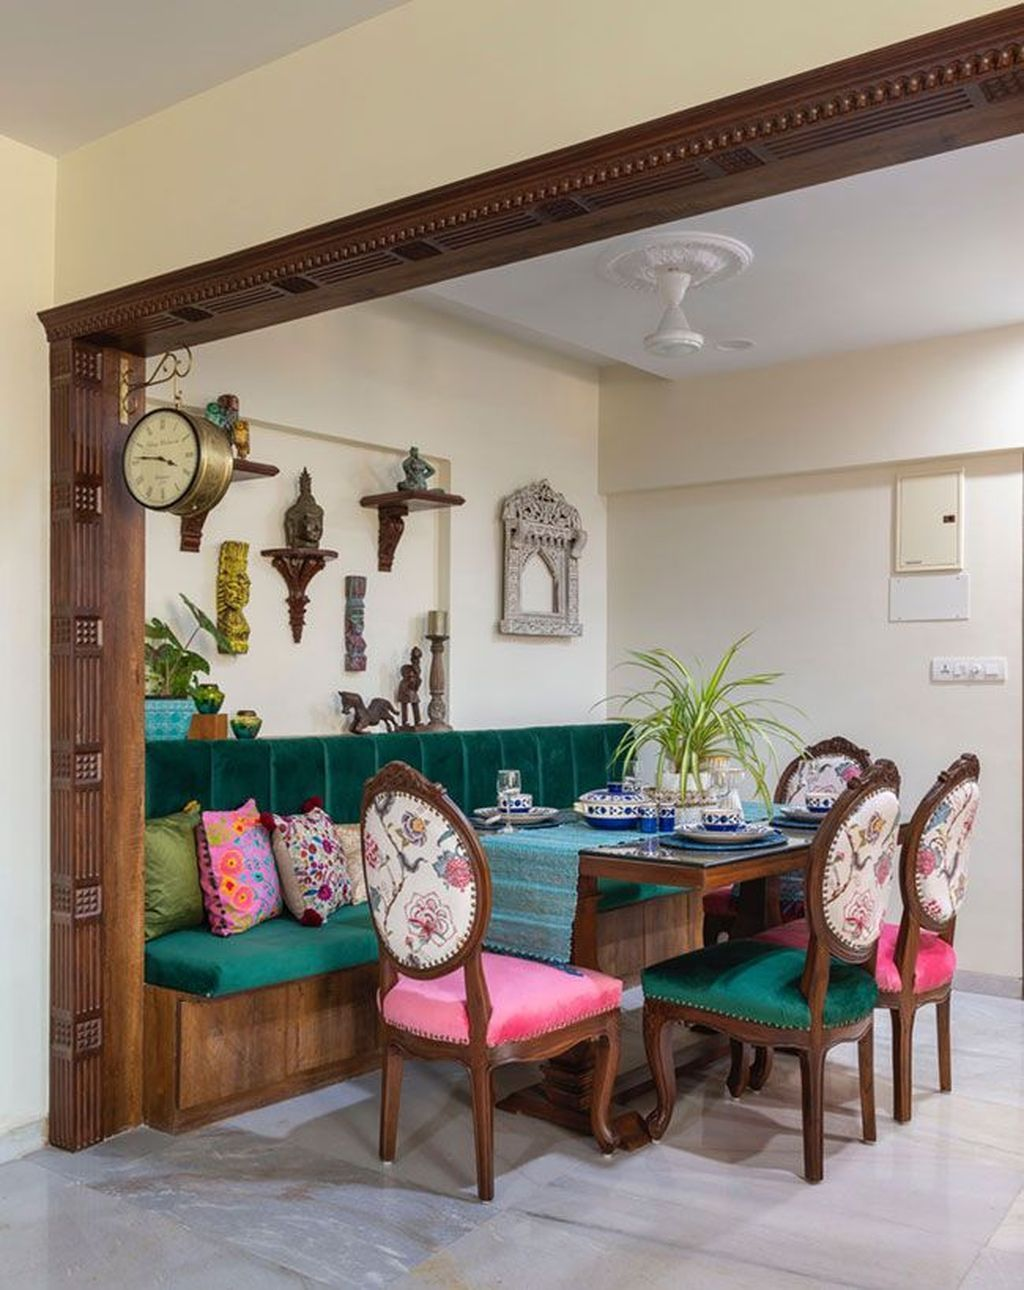 34 Beautiful Indian Home Decor Ideas 721420434041966846 ...